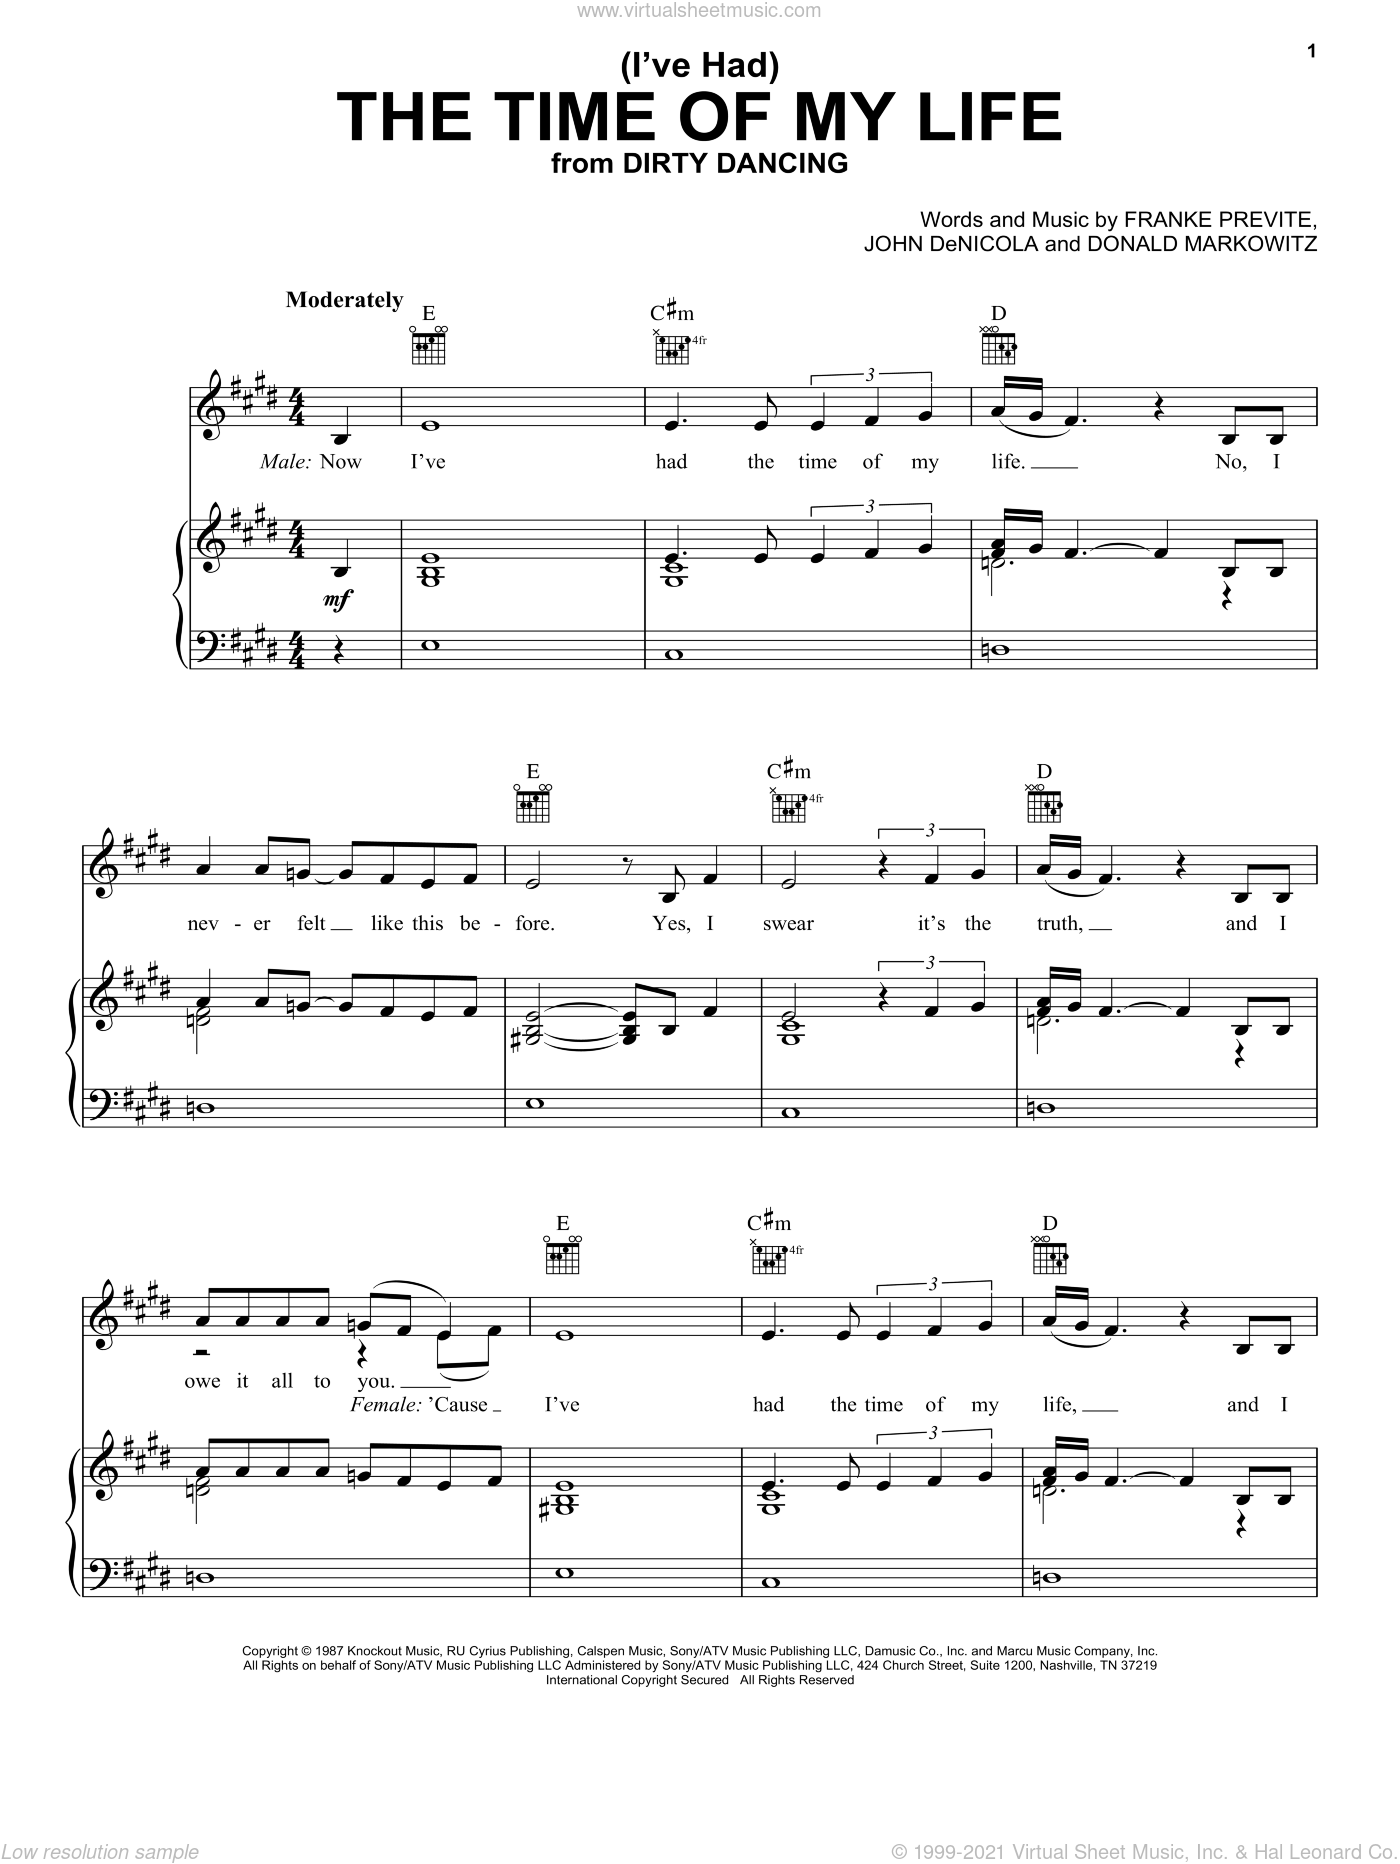 (I've Had) The Time Of My Life sheet music for voice, piano or guitar by John DeNicola, Jennifer Warnes and Donald Markowitz. Score Image Preview.